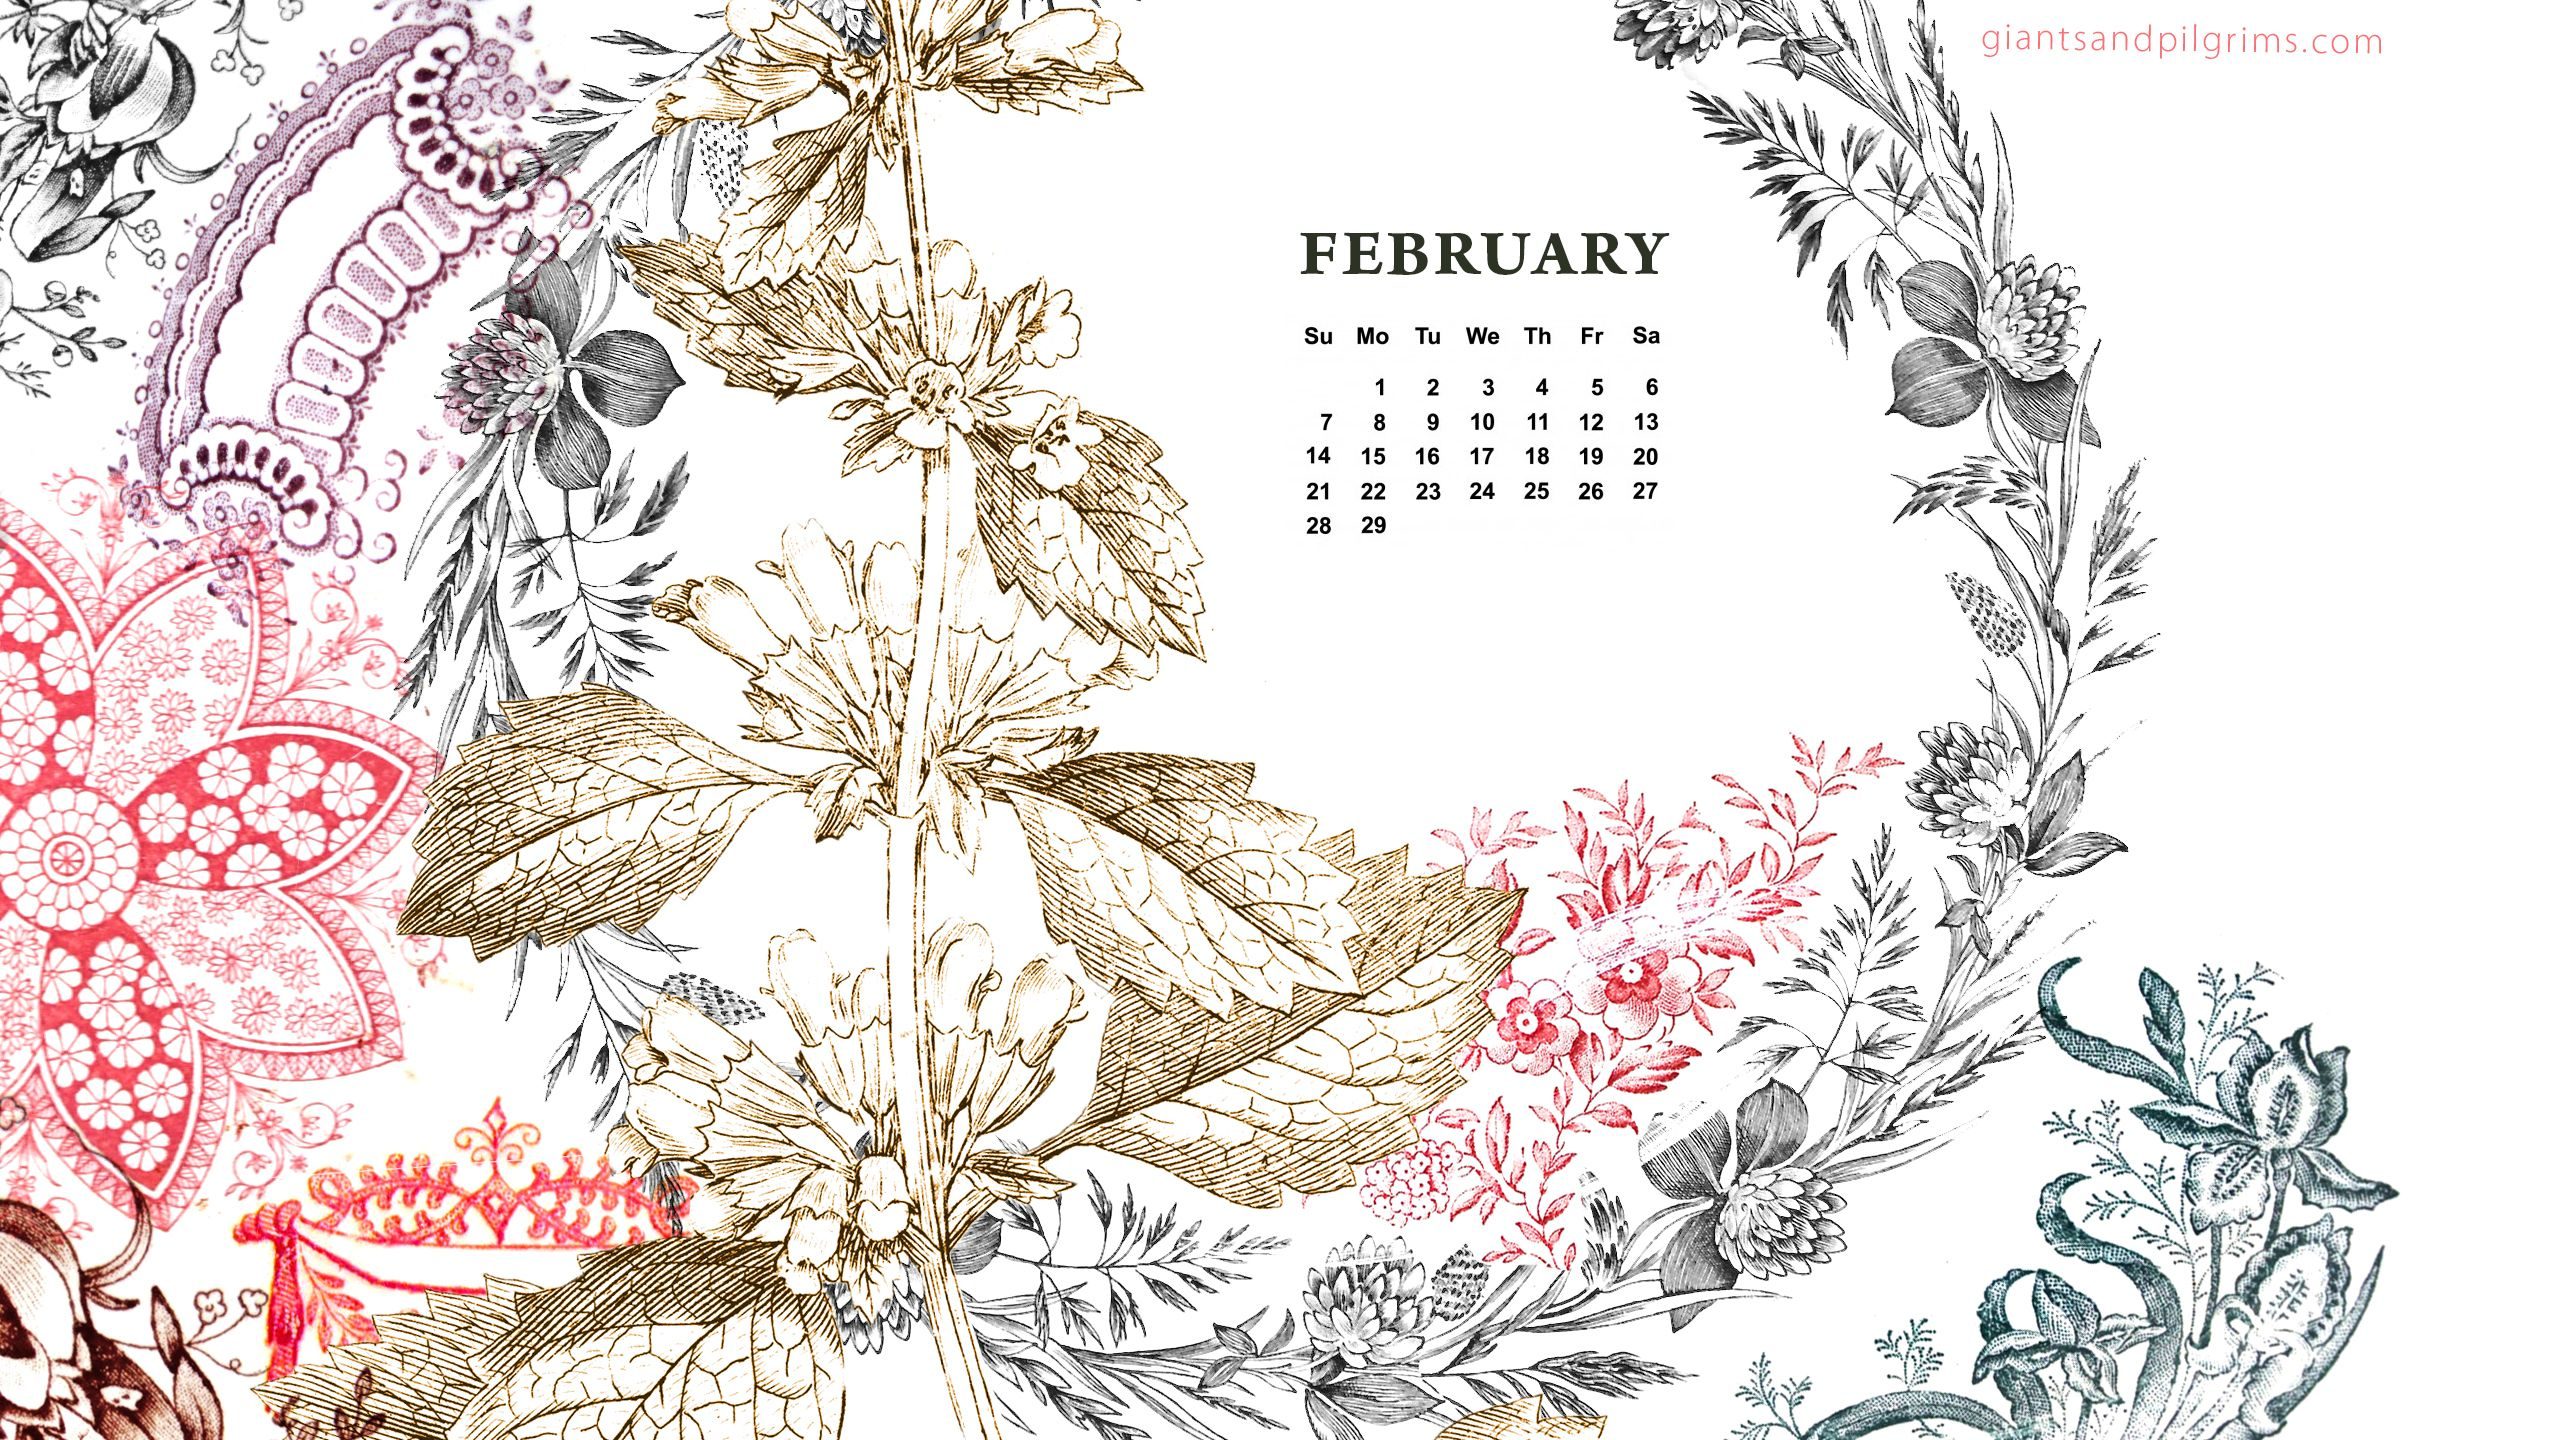 Free Desktop Calendar Wallpaper : Giants pilgrims february free calendar desktop and